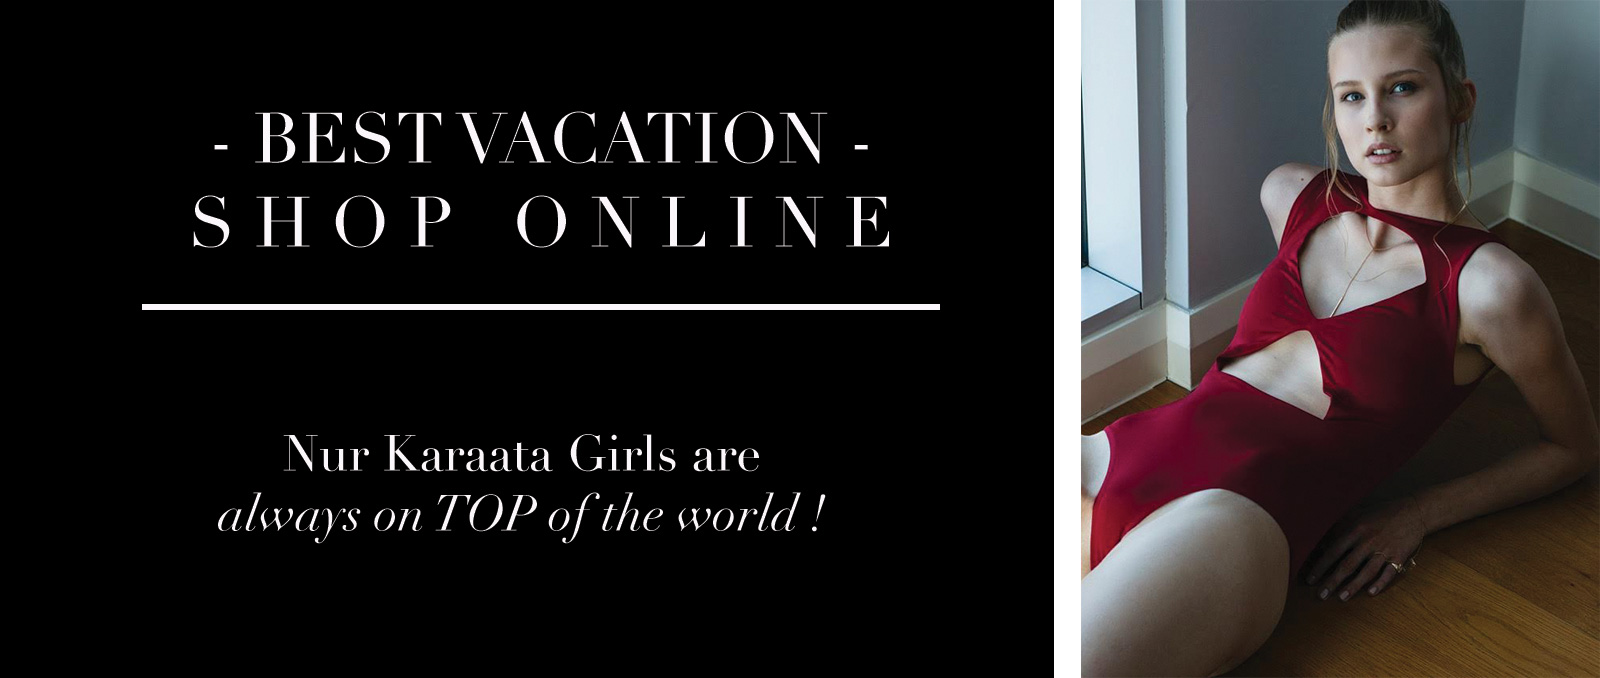 Best Vacation Shop Online